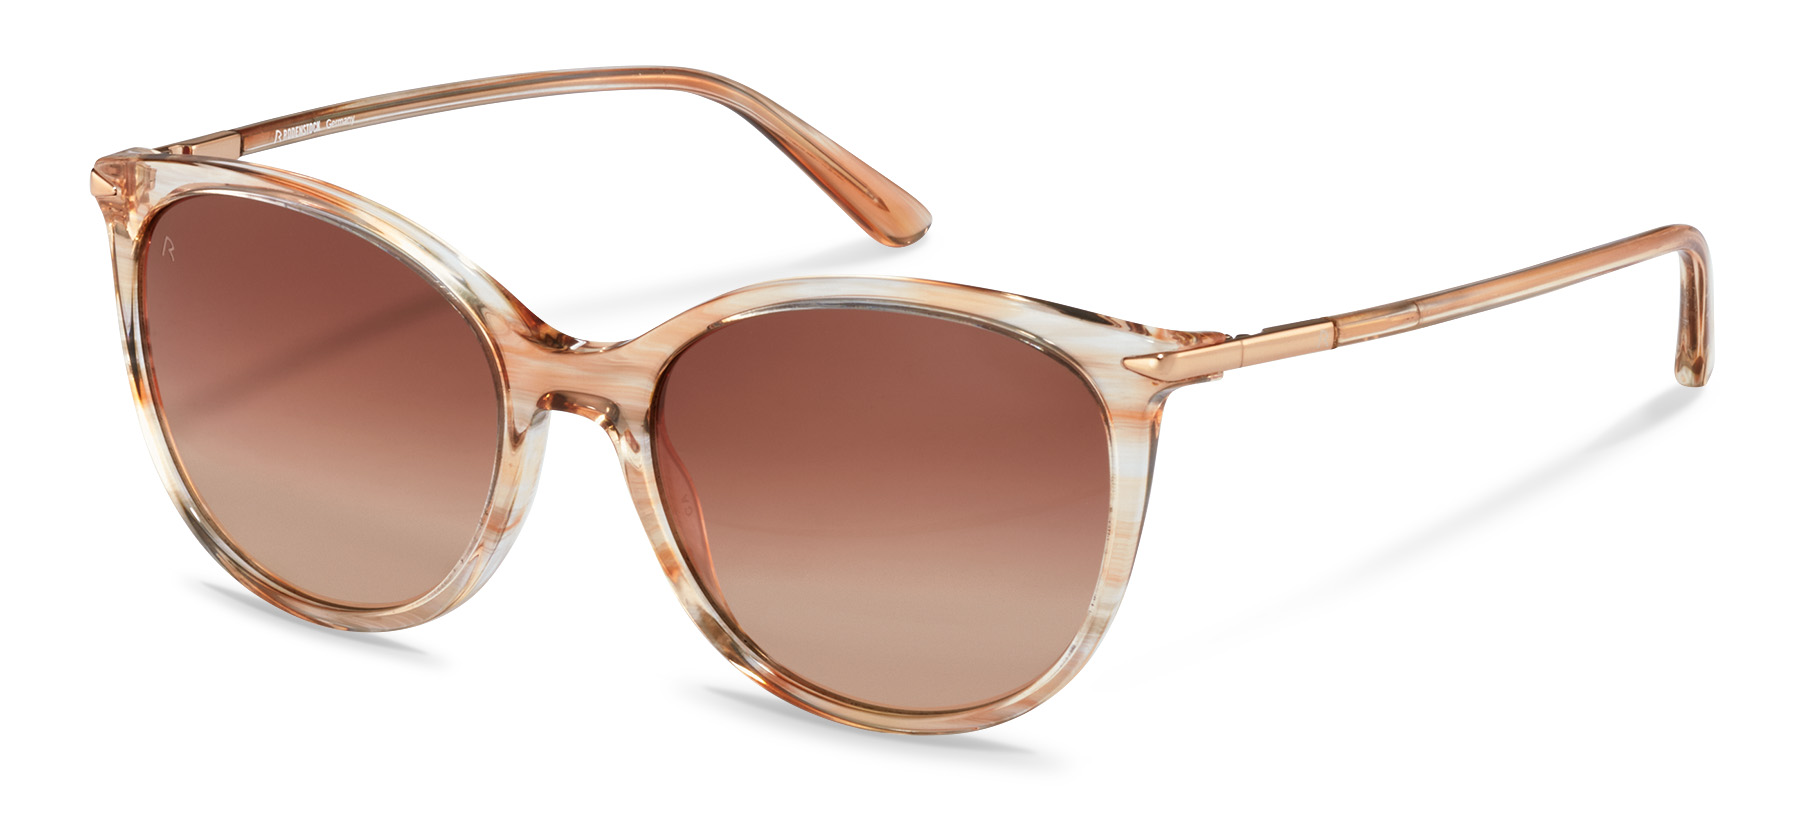 Rodenstock-Sunglasses-R3322-rosestructured/rosegold